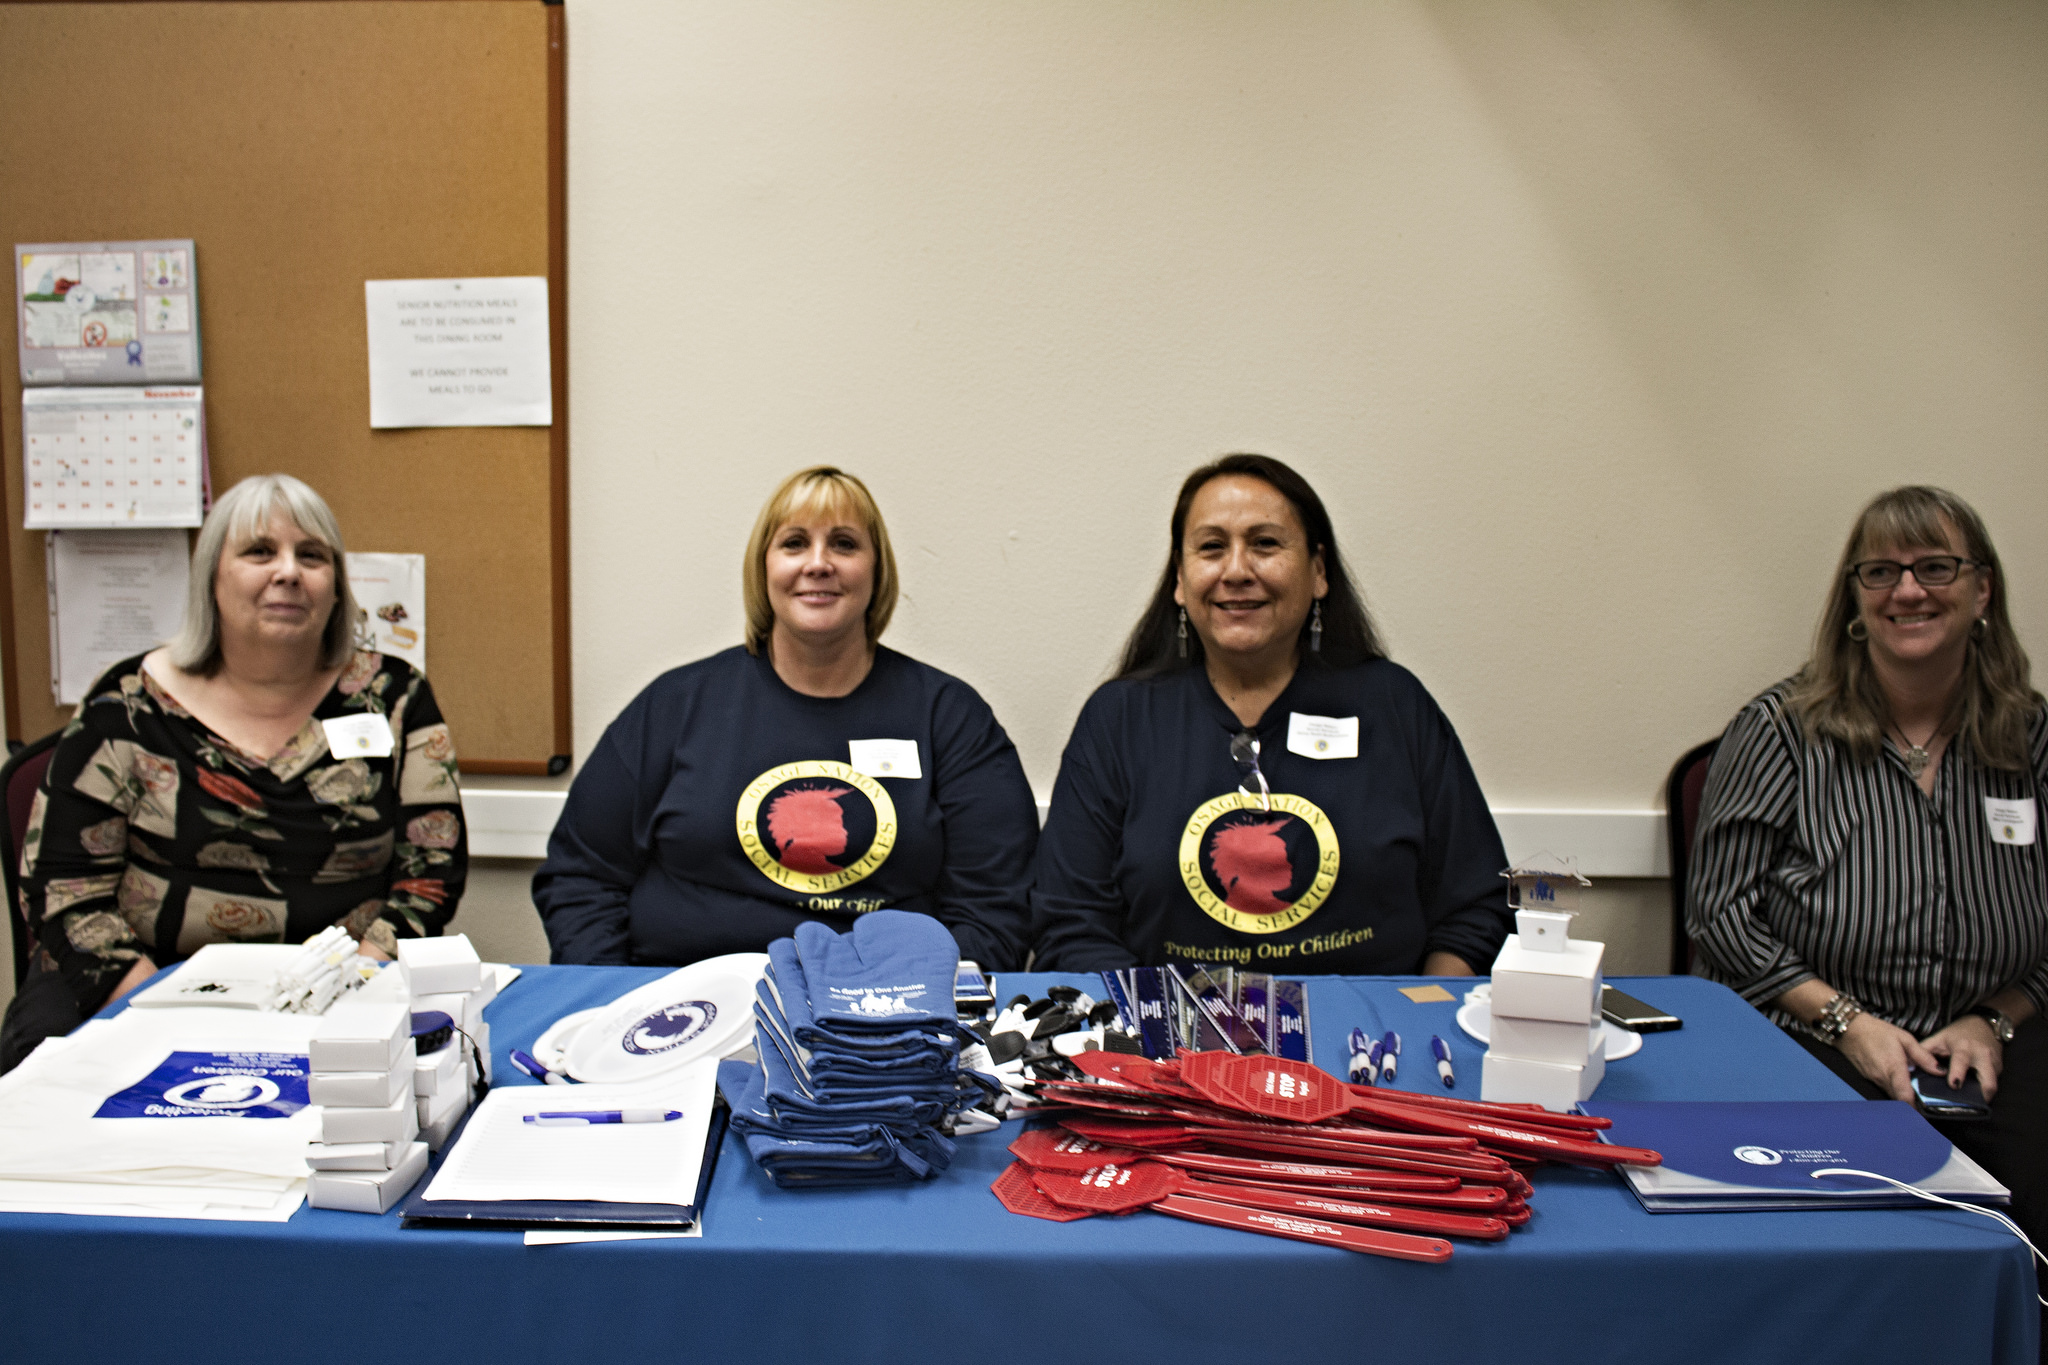 Osage programs and opportunities highlighted at UOSC gathering